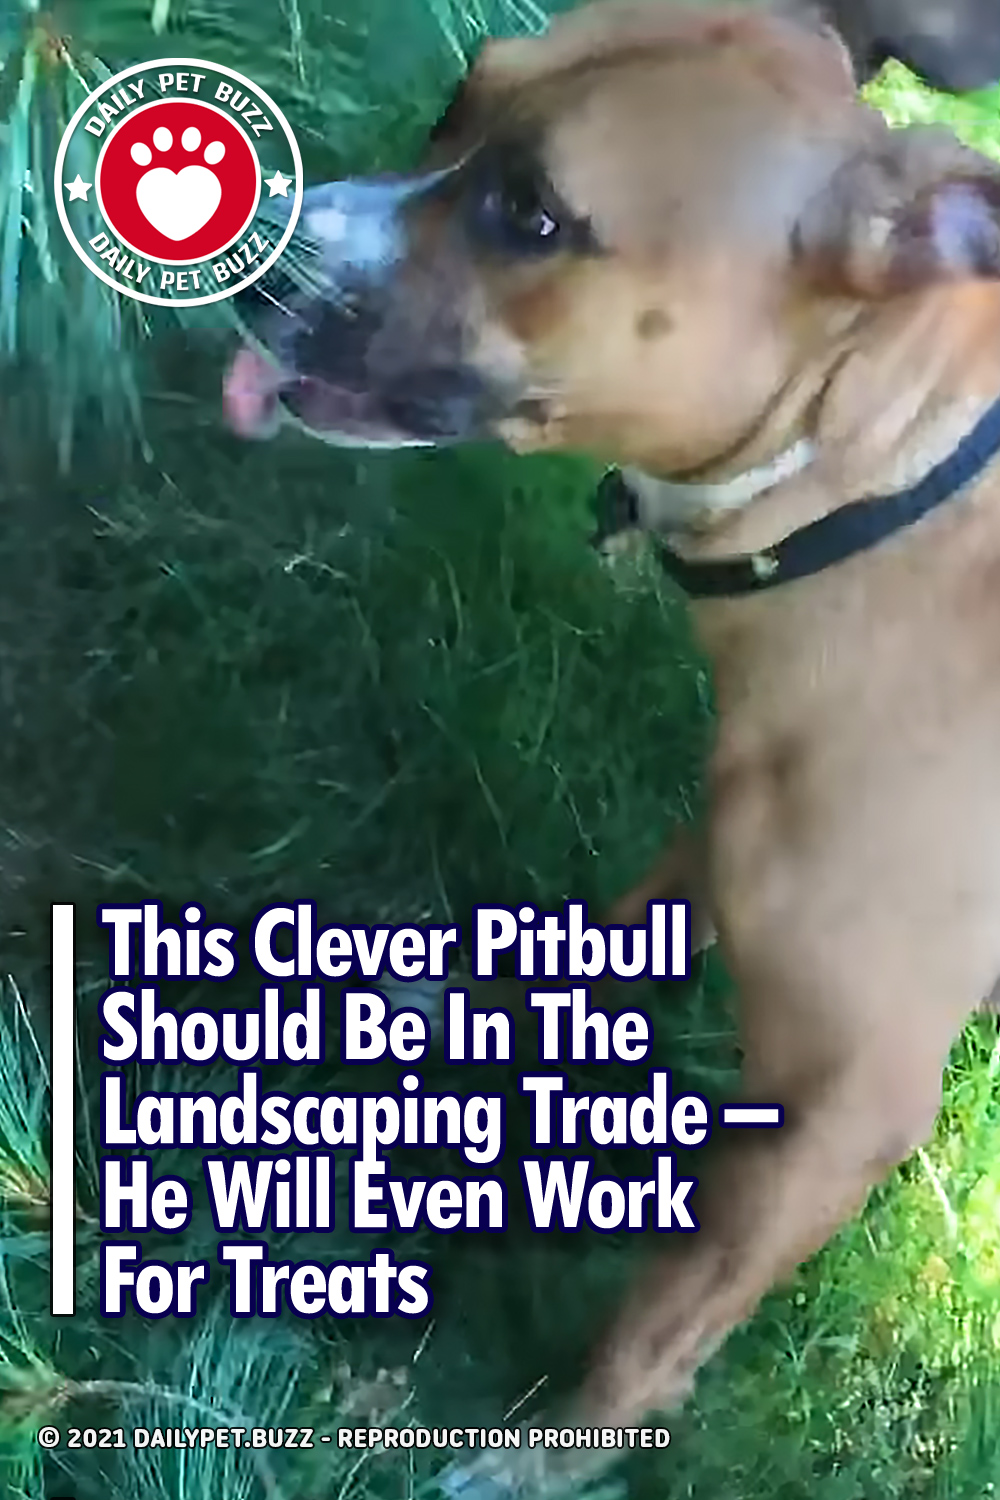 This Clever Pitbull Should Be In The Landscaping Trade – He Will Even Work For Treats